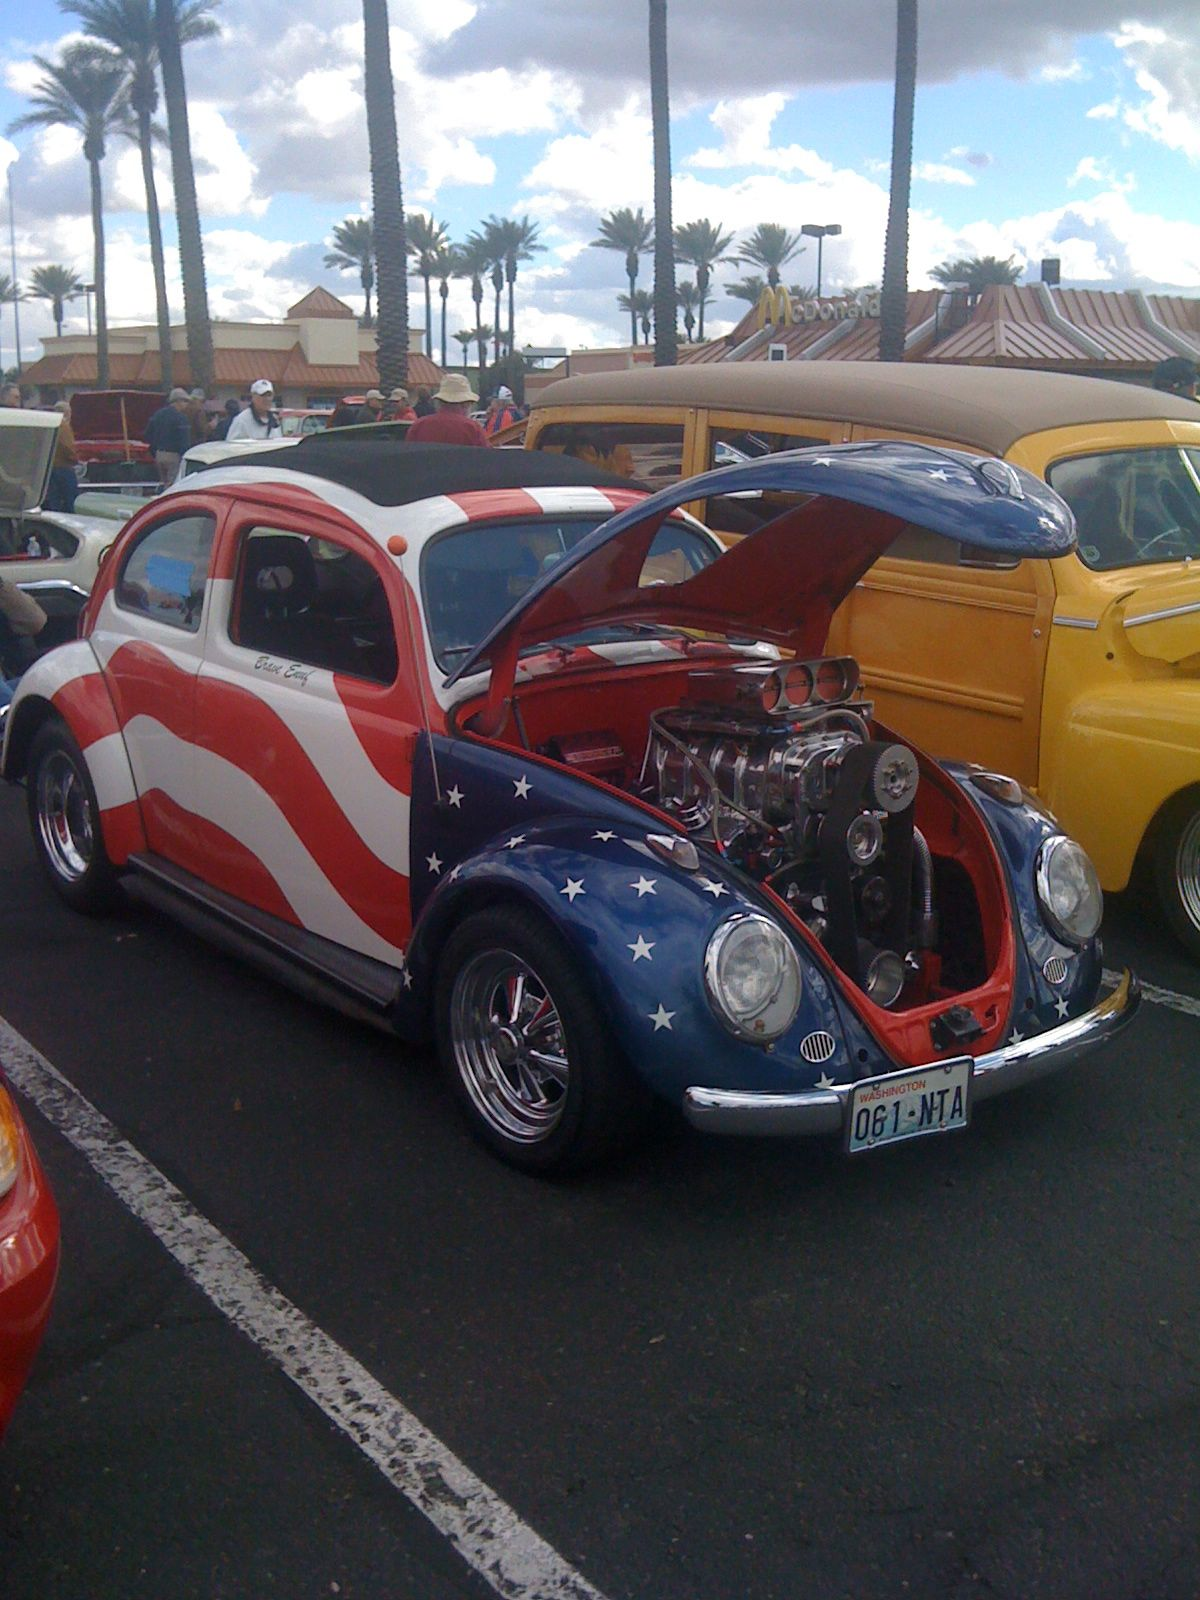 Special cars volkswagen beetle bug v8 - V8 Powered Vw Bug Scottsdale Arizona